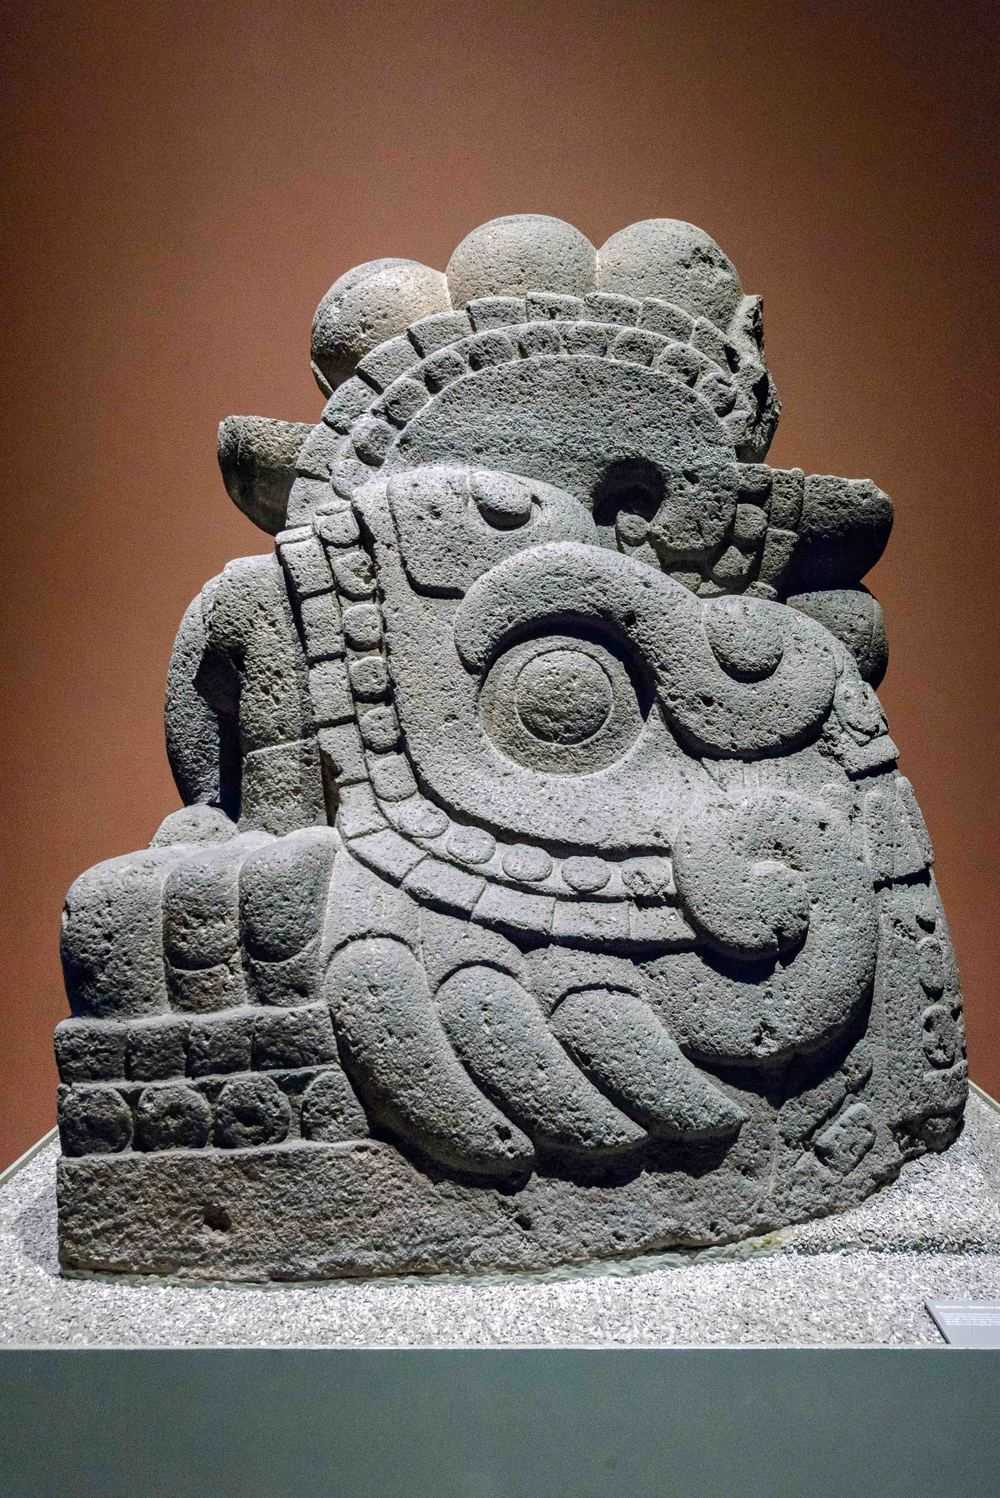 Xiuhcoatl. In the Mexica cosmogony, the fire serpent Xiuhcoatl constituted the principle weapon of the god-sun Huitzilopochtli. This mythic animal was in charge of leading the sun across the sky and may be indentified by its reptile body with strong lizard-like extremities, as well as a horn which protrudes from its nose.